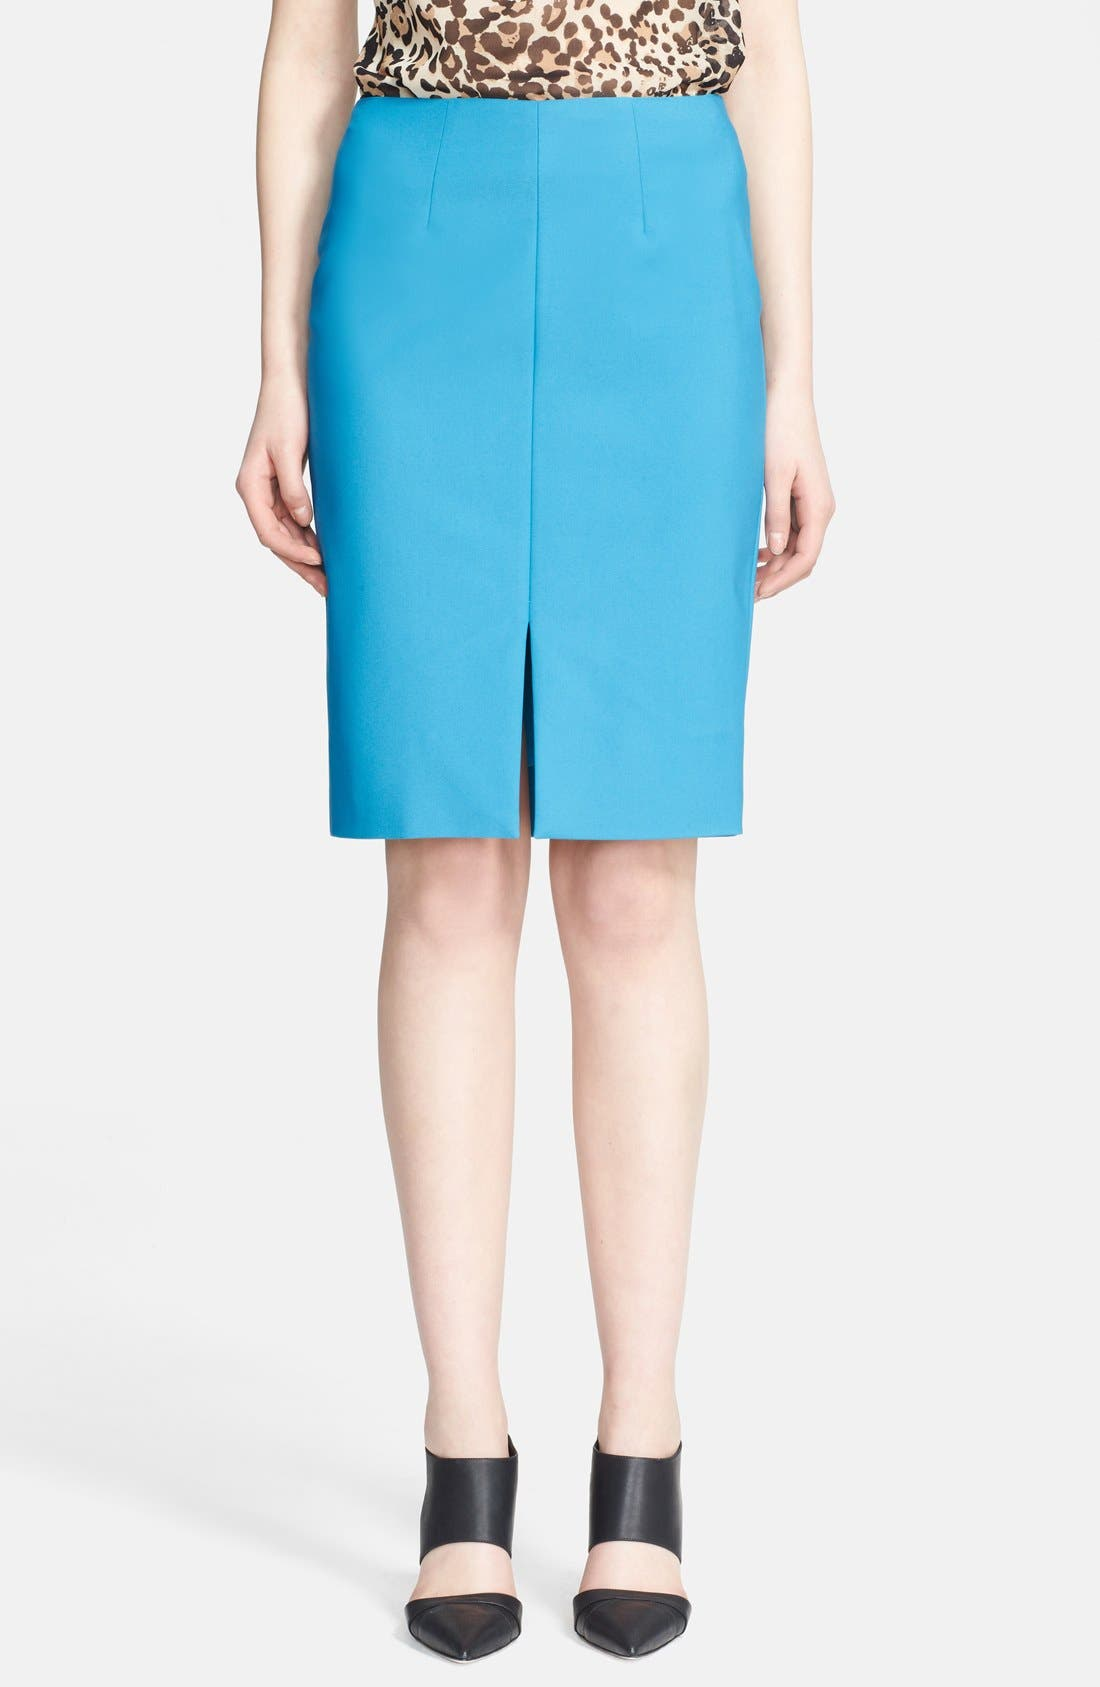 L'AGENCE Front Slit Pencil Skirt